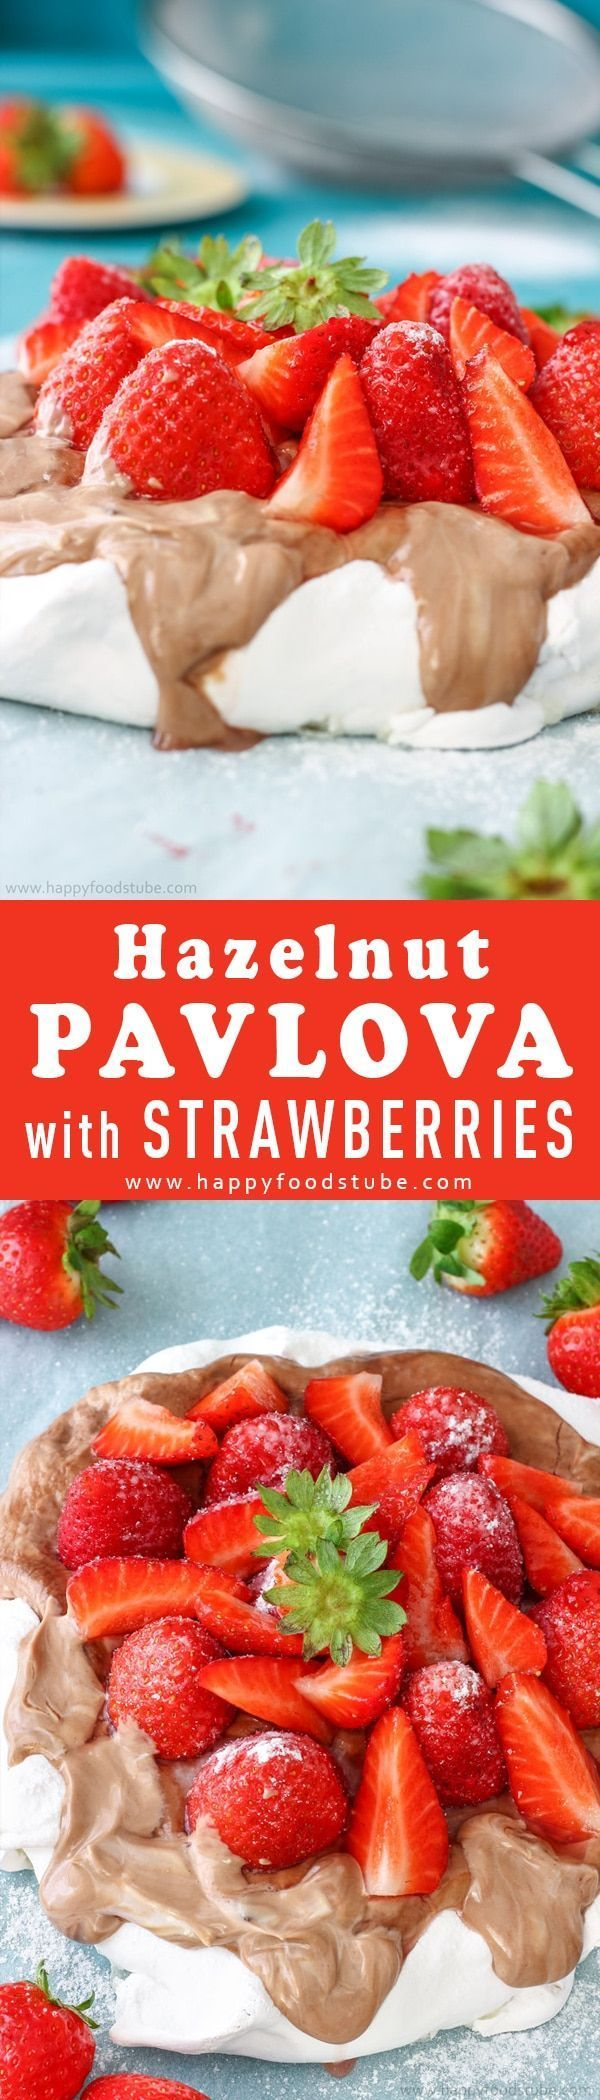 Hazelnut Pavlova cake with strawberries is the ultimate summer dessert. Sweet meringue shell is topped with Nutella layer and fresh strawberries. Super easy to make dessert recipe via @happyfoodstube